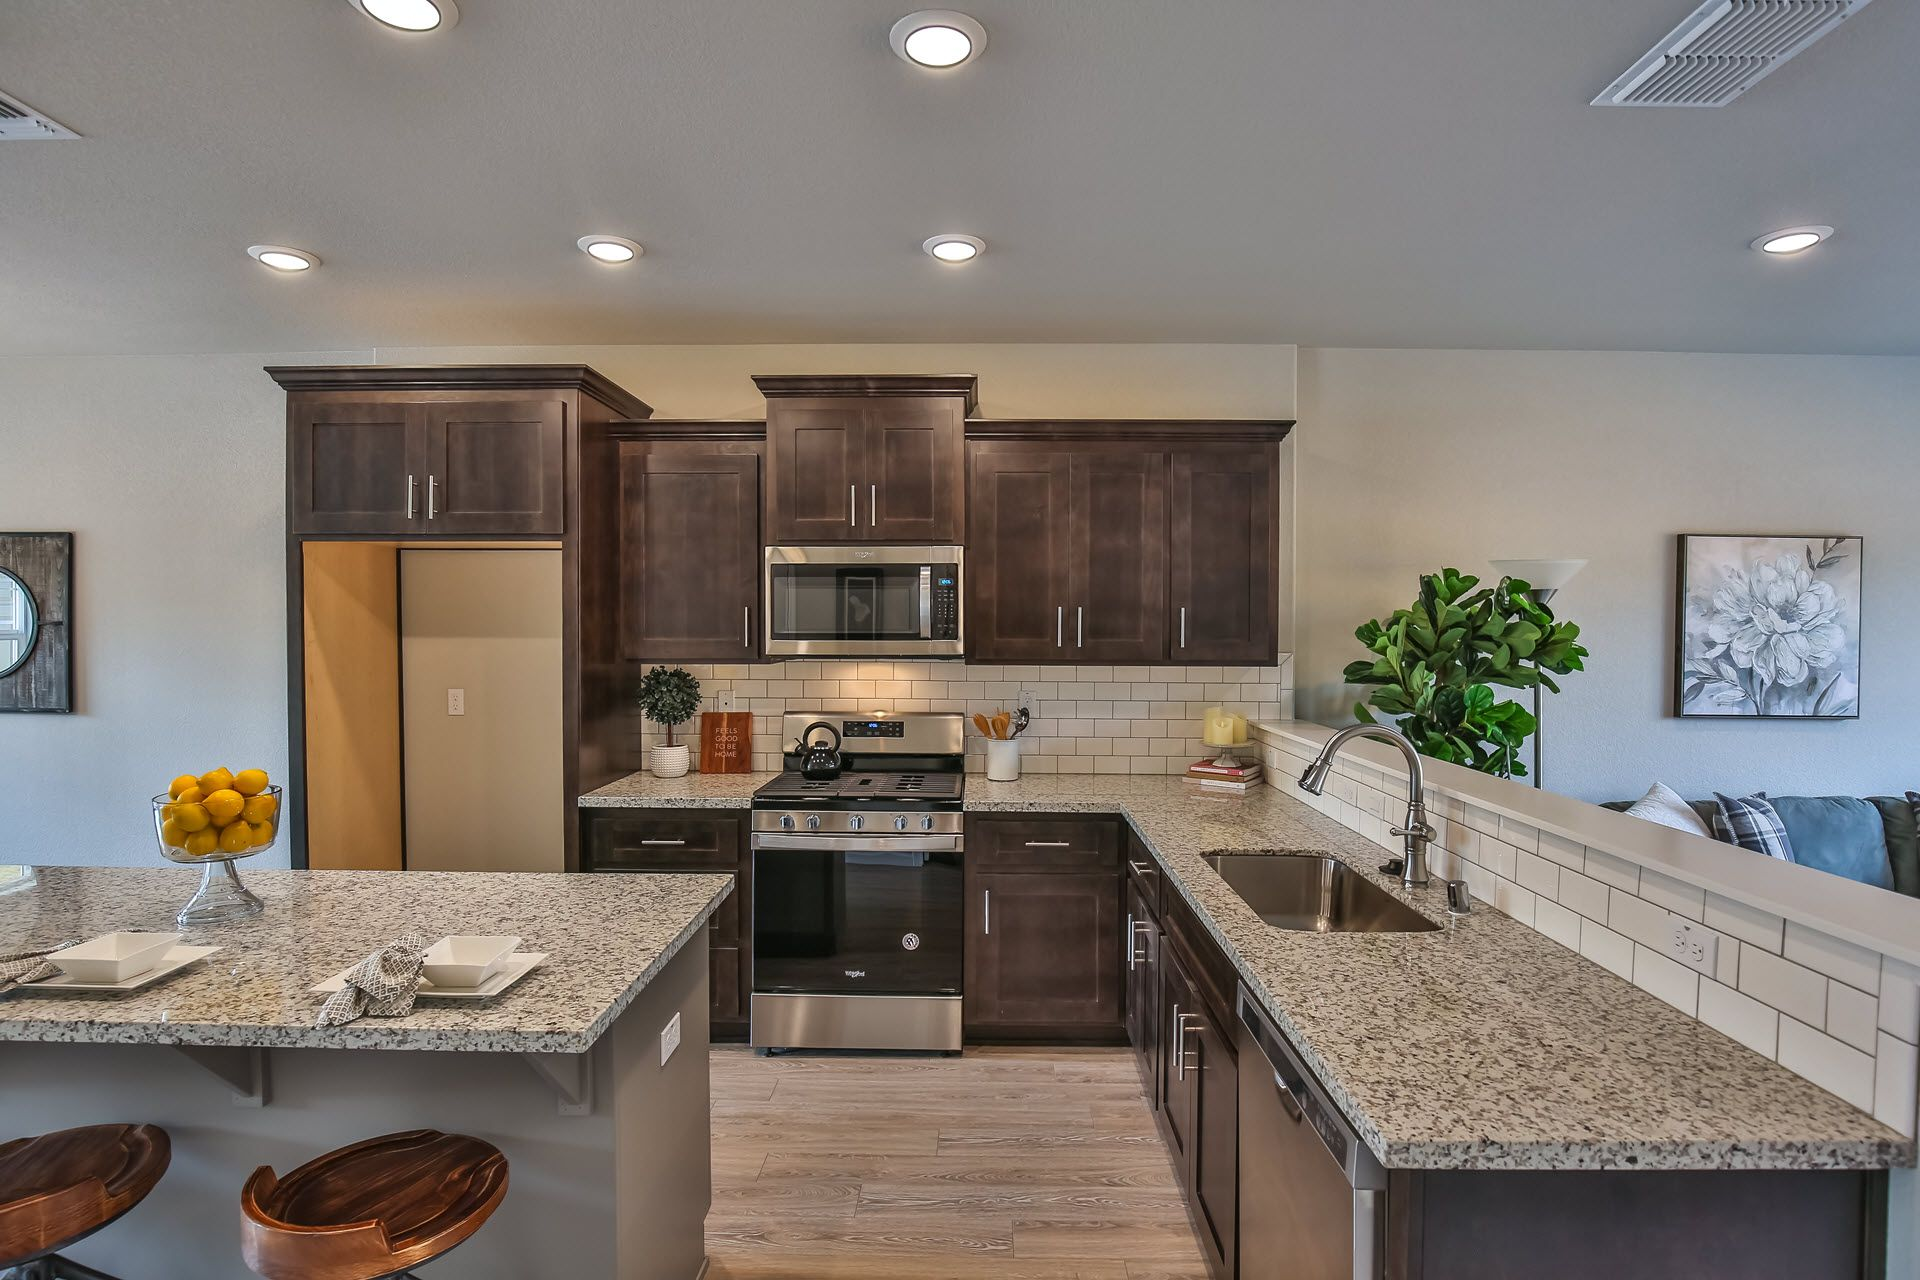 Kitchen featured in the Residence 1842 By Village by the Ponds  in Sacramento, CA